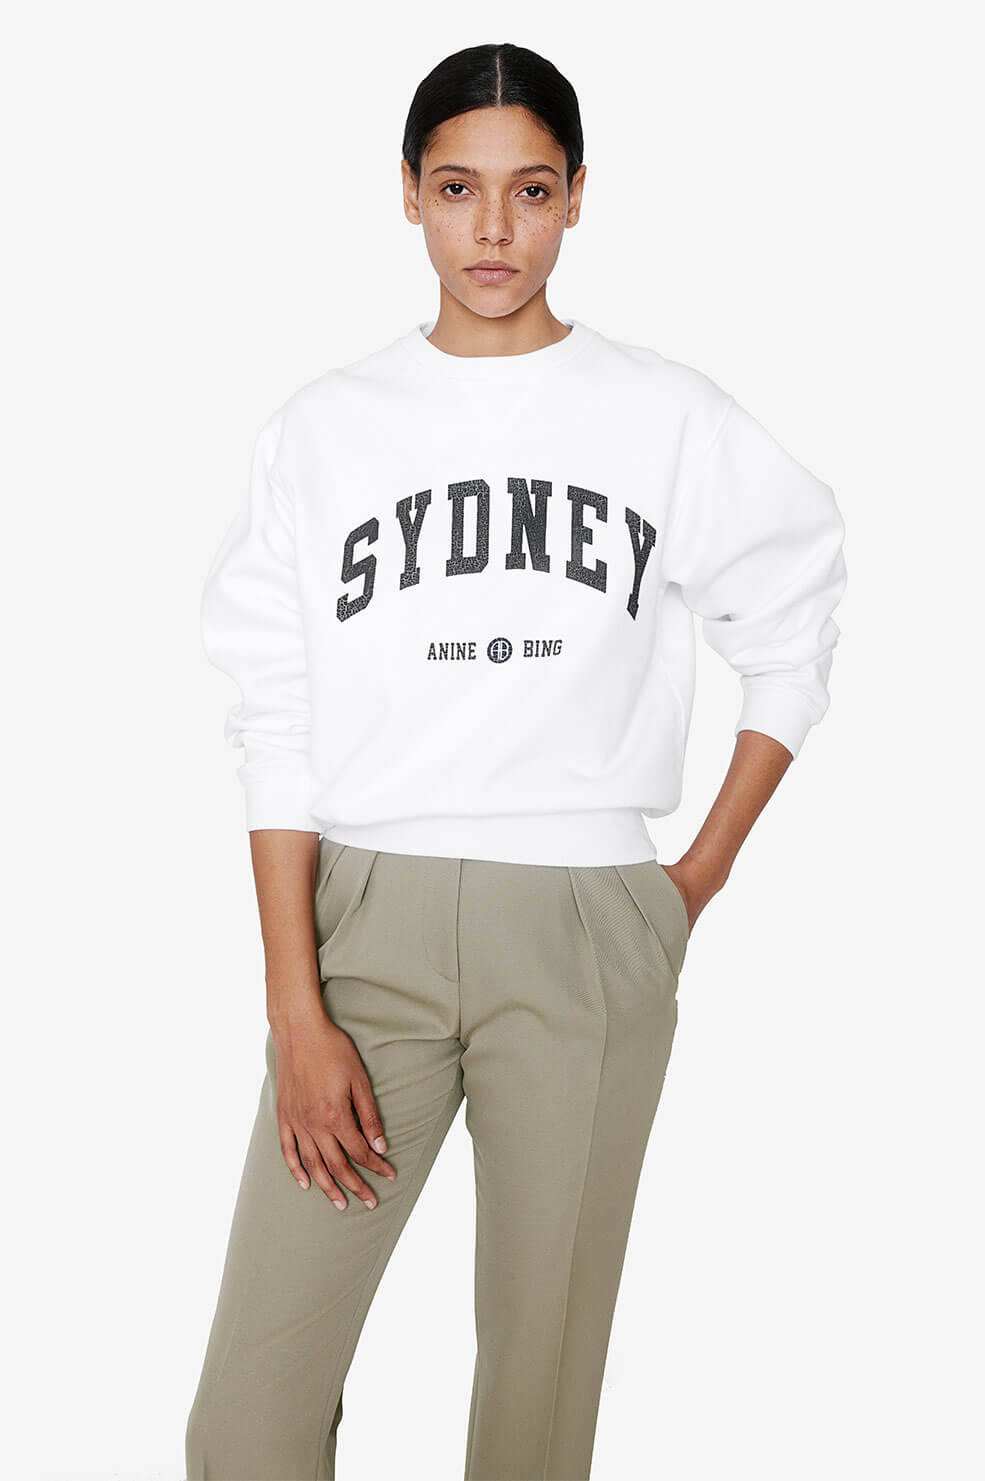 Ramona Sweatshirt University Sydney  product image